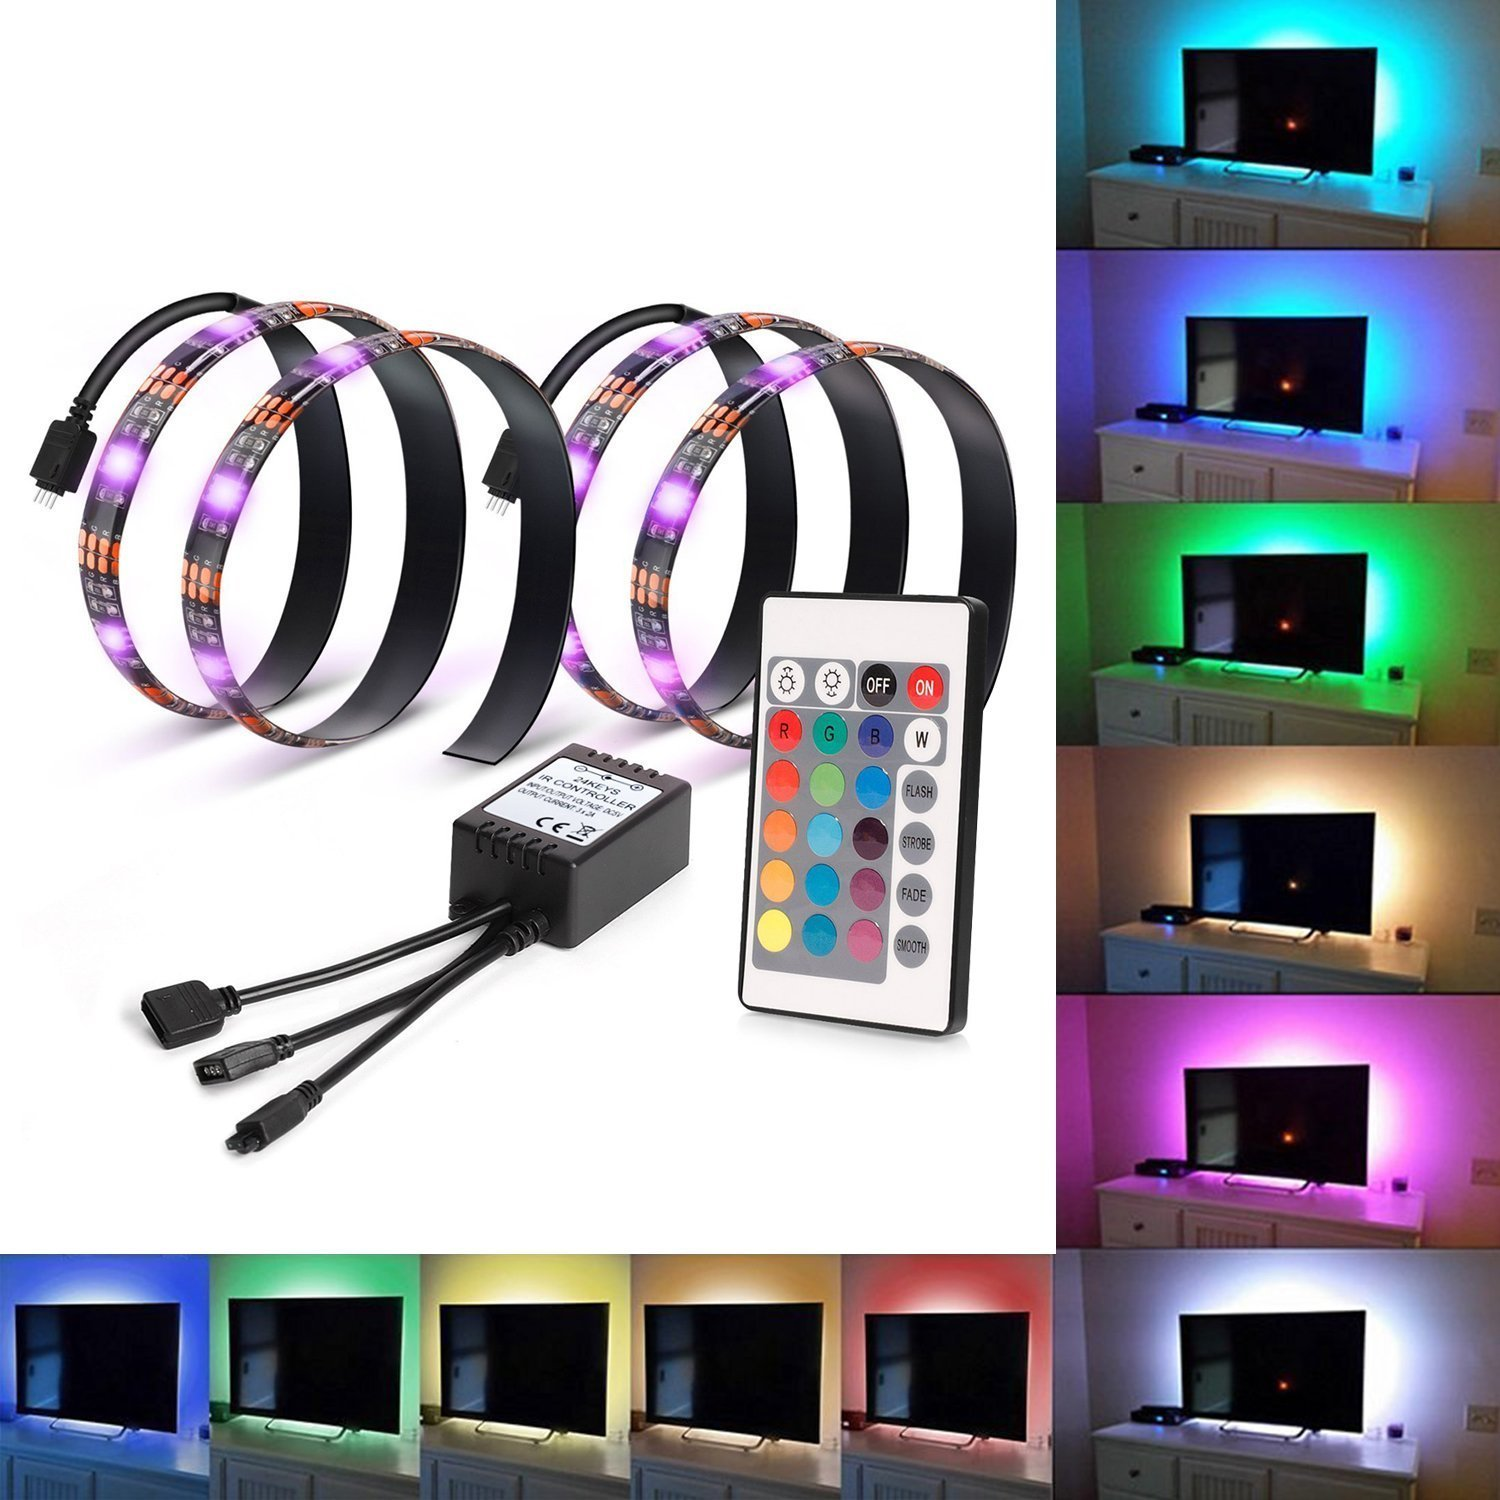 Kohree 2 RGB Multi Color Led Light Strip Bias Lighting HDTV USB Powered TV Backlighting Home Theater Accent lighting Kit